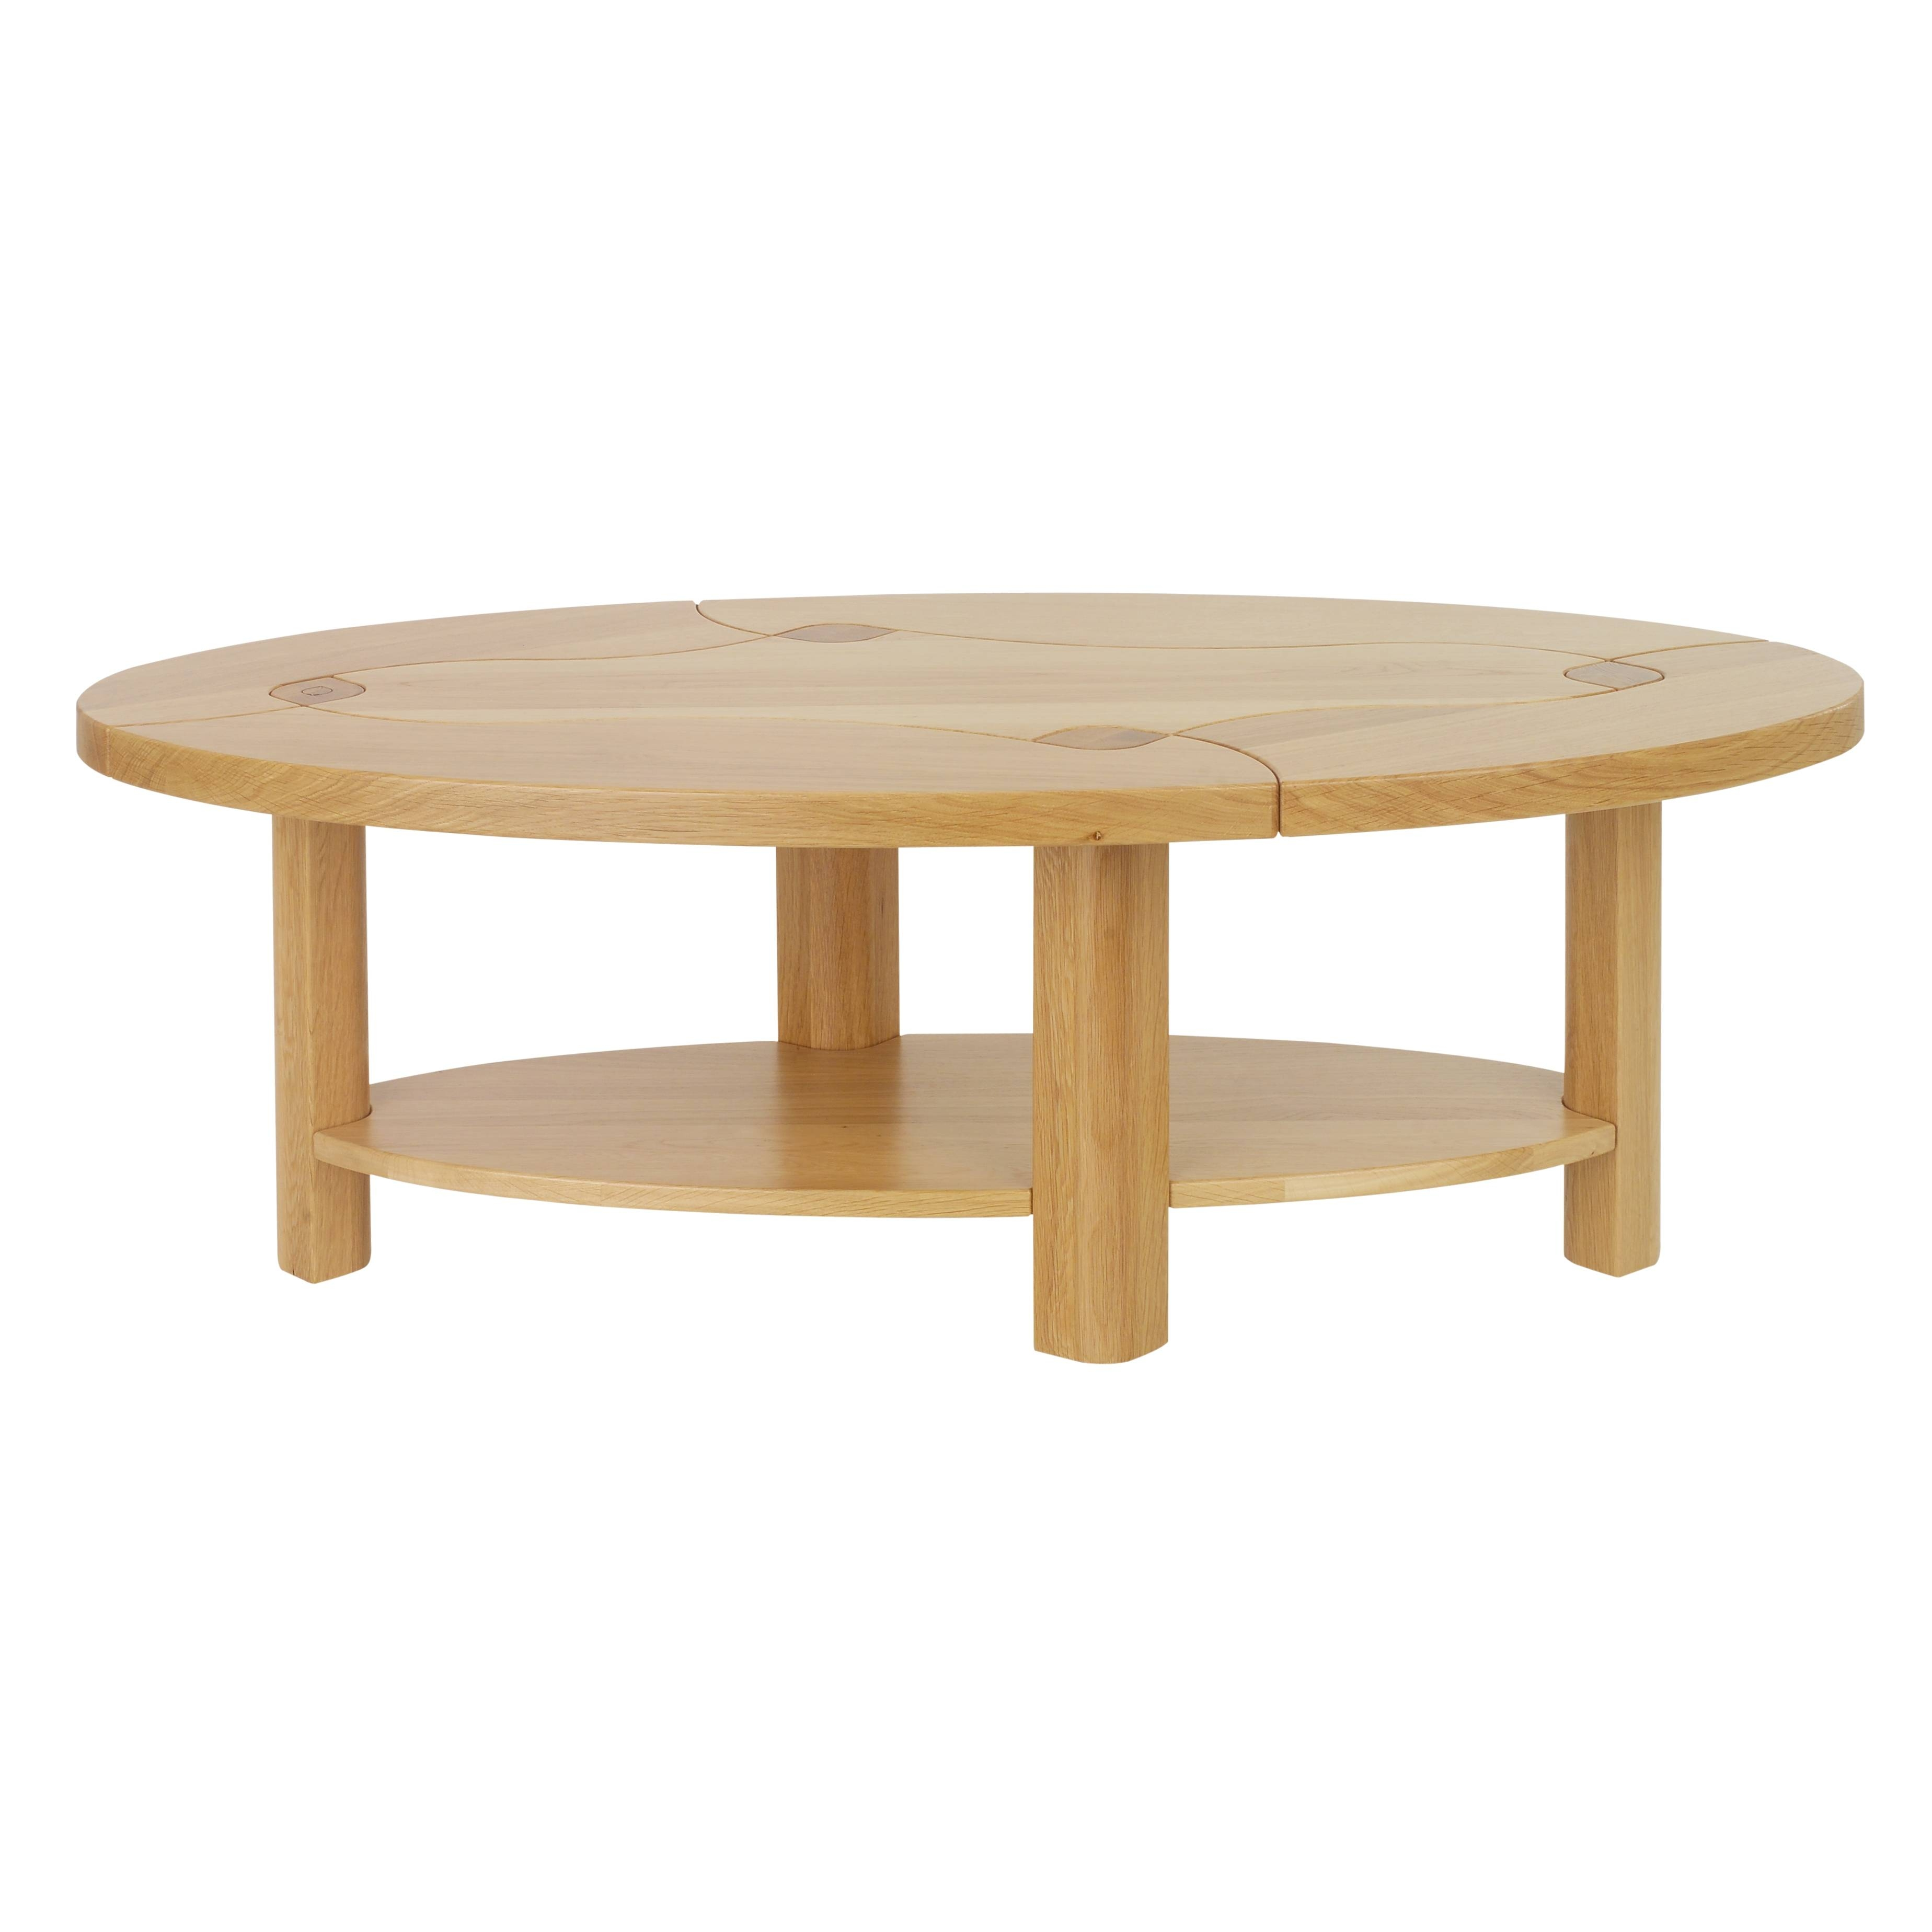 Furniture: Creative Minimalist Small Oval Coffee Table For Living regarding Small Wood Coffee Tables (Image 19 of 30)